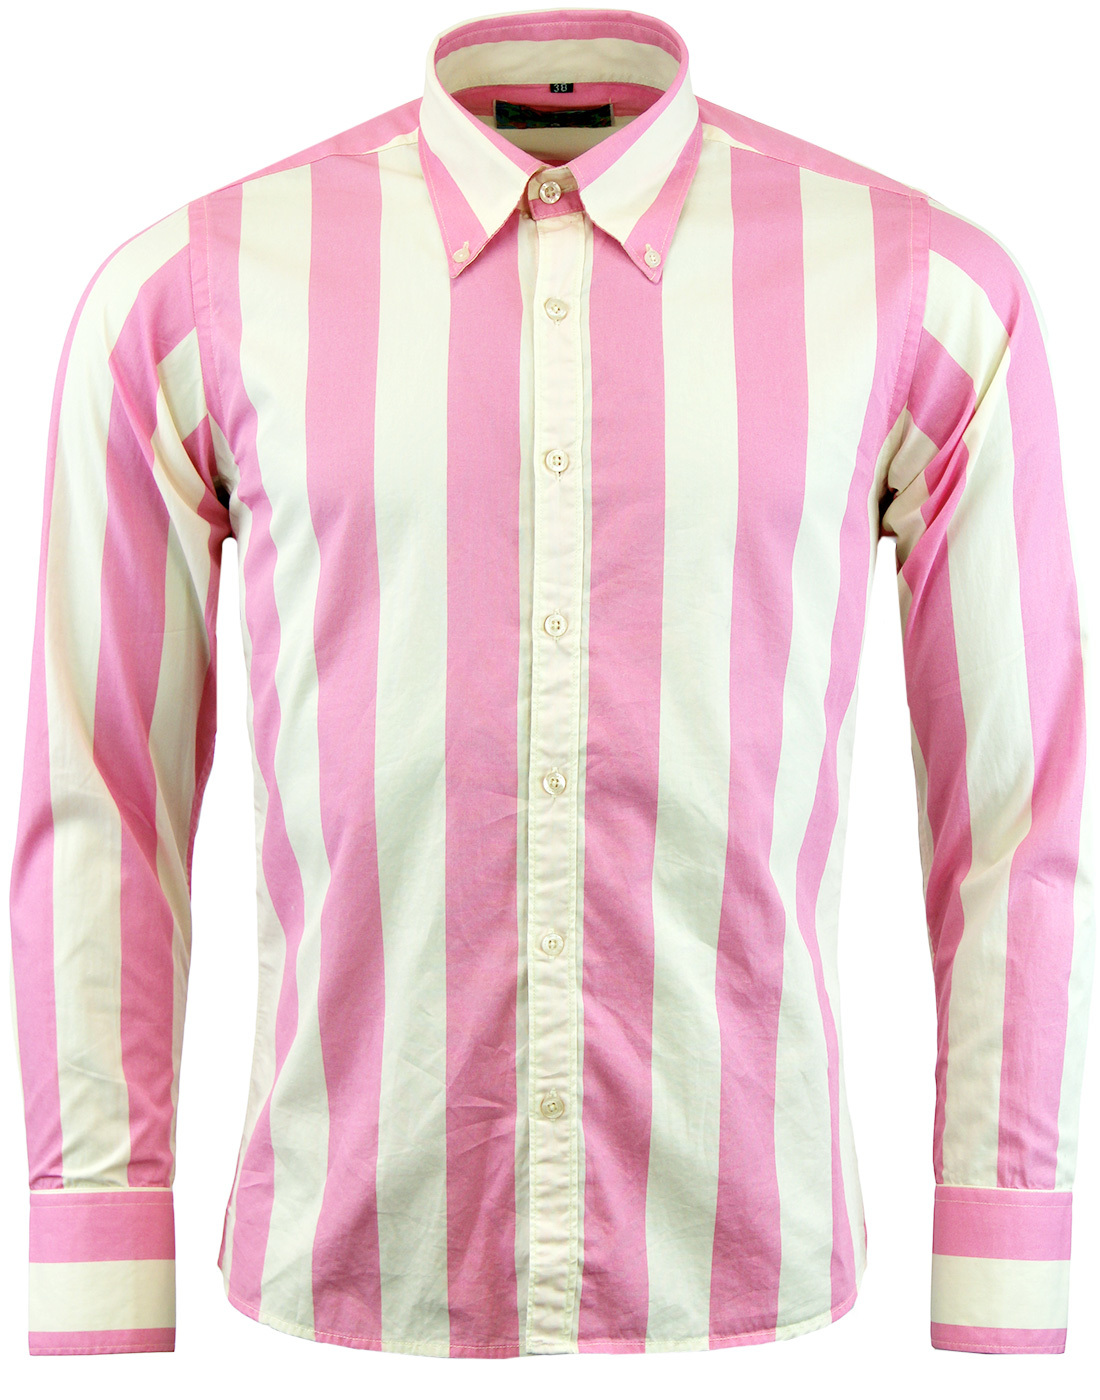 Madcap england eton retro 1960s mod candy stripe shirt in pink for Pink and purple striped rugby shirt